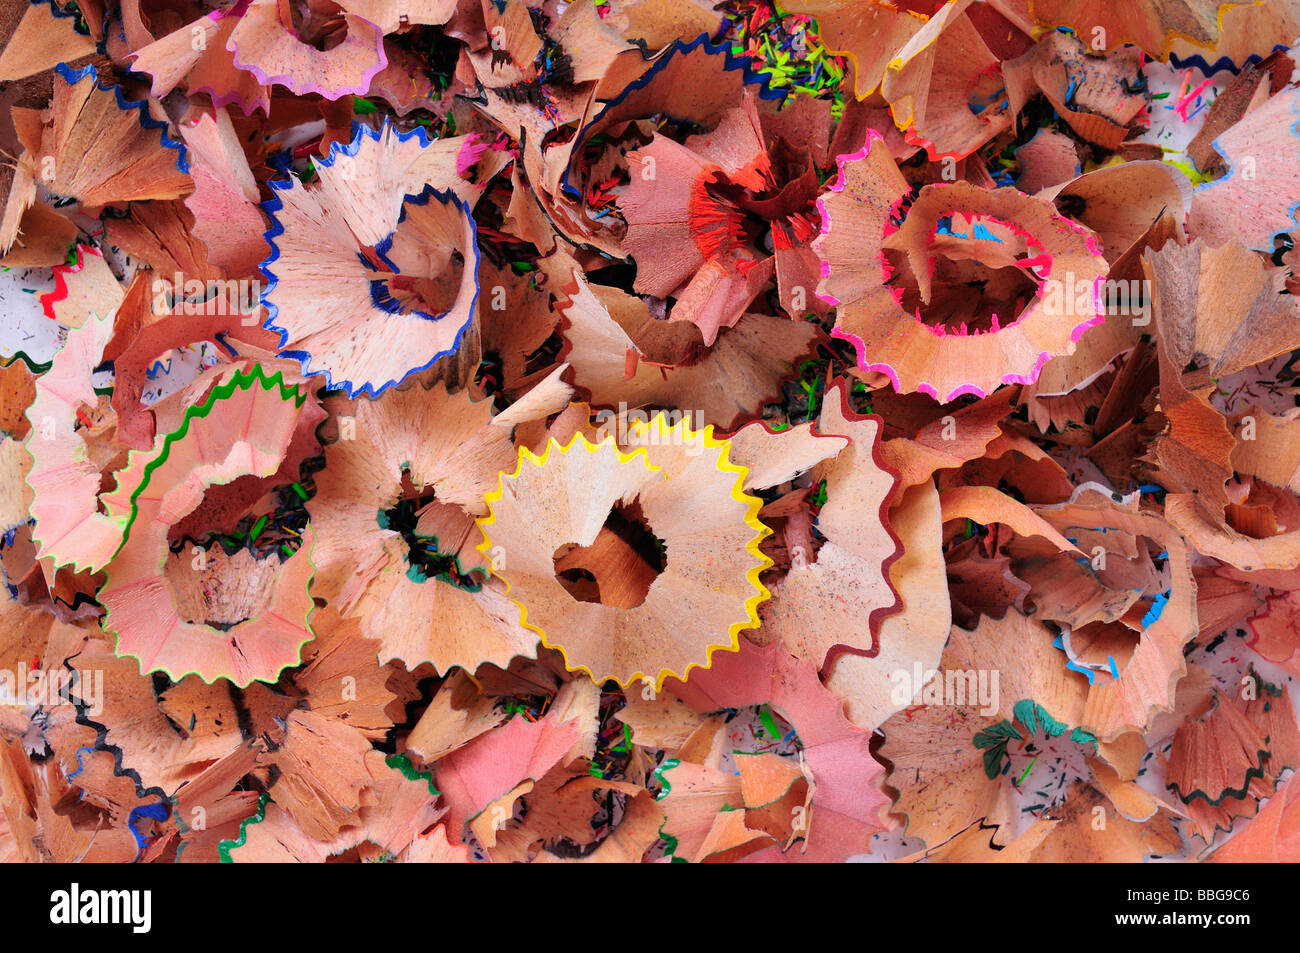 Clippings from the sharpening of coloured crayons - Stock Image